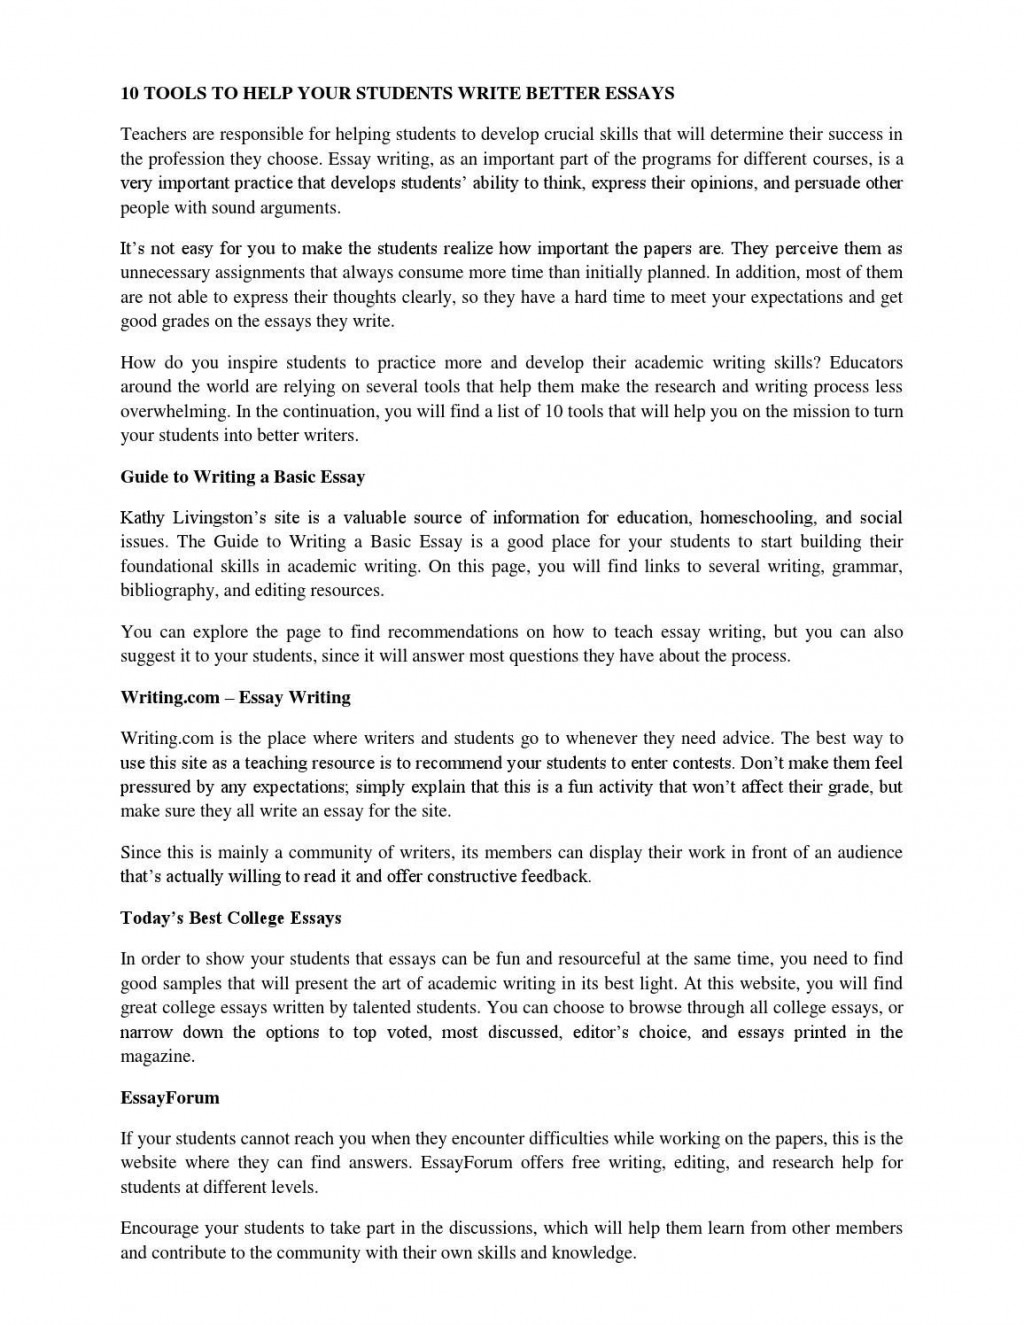 025 Essay Writing Websites Reviews For Students Editing Free Page Research Paper Example That20 Online Stirring Papers Plagiarism Checker Psychology Download Large